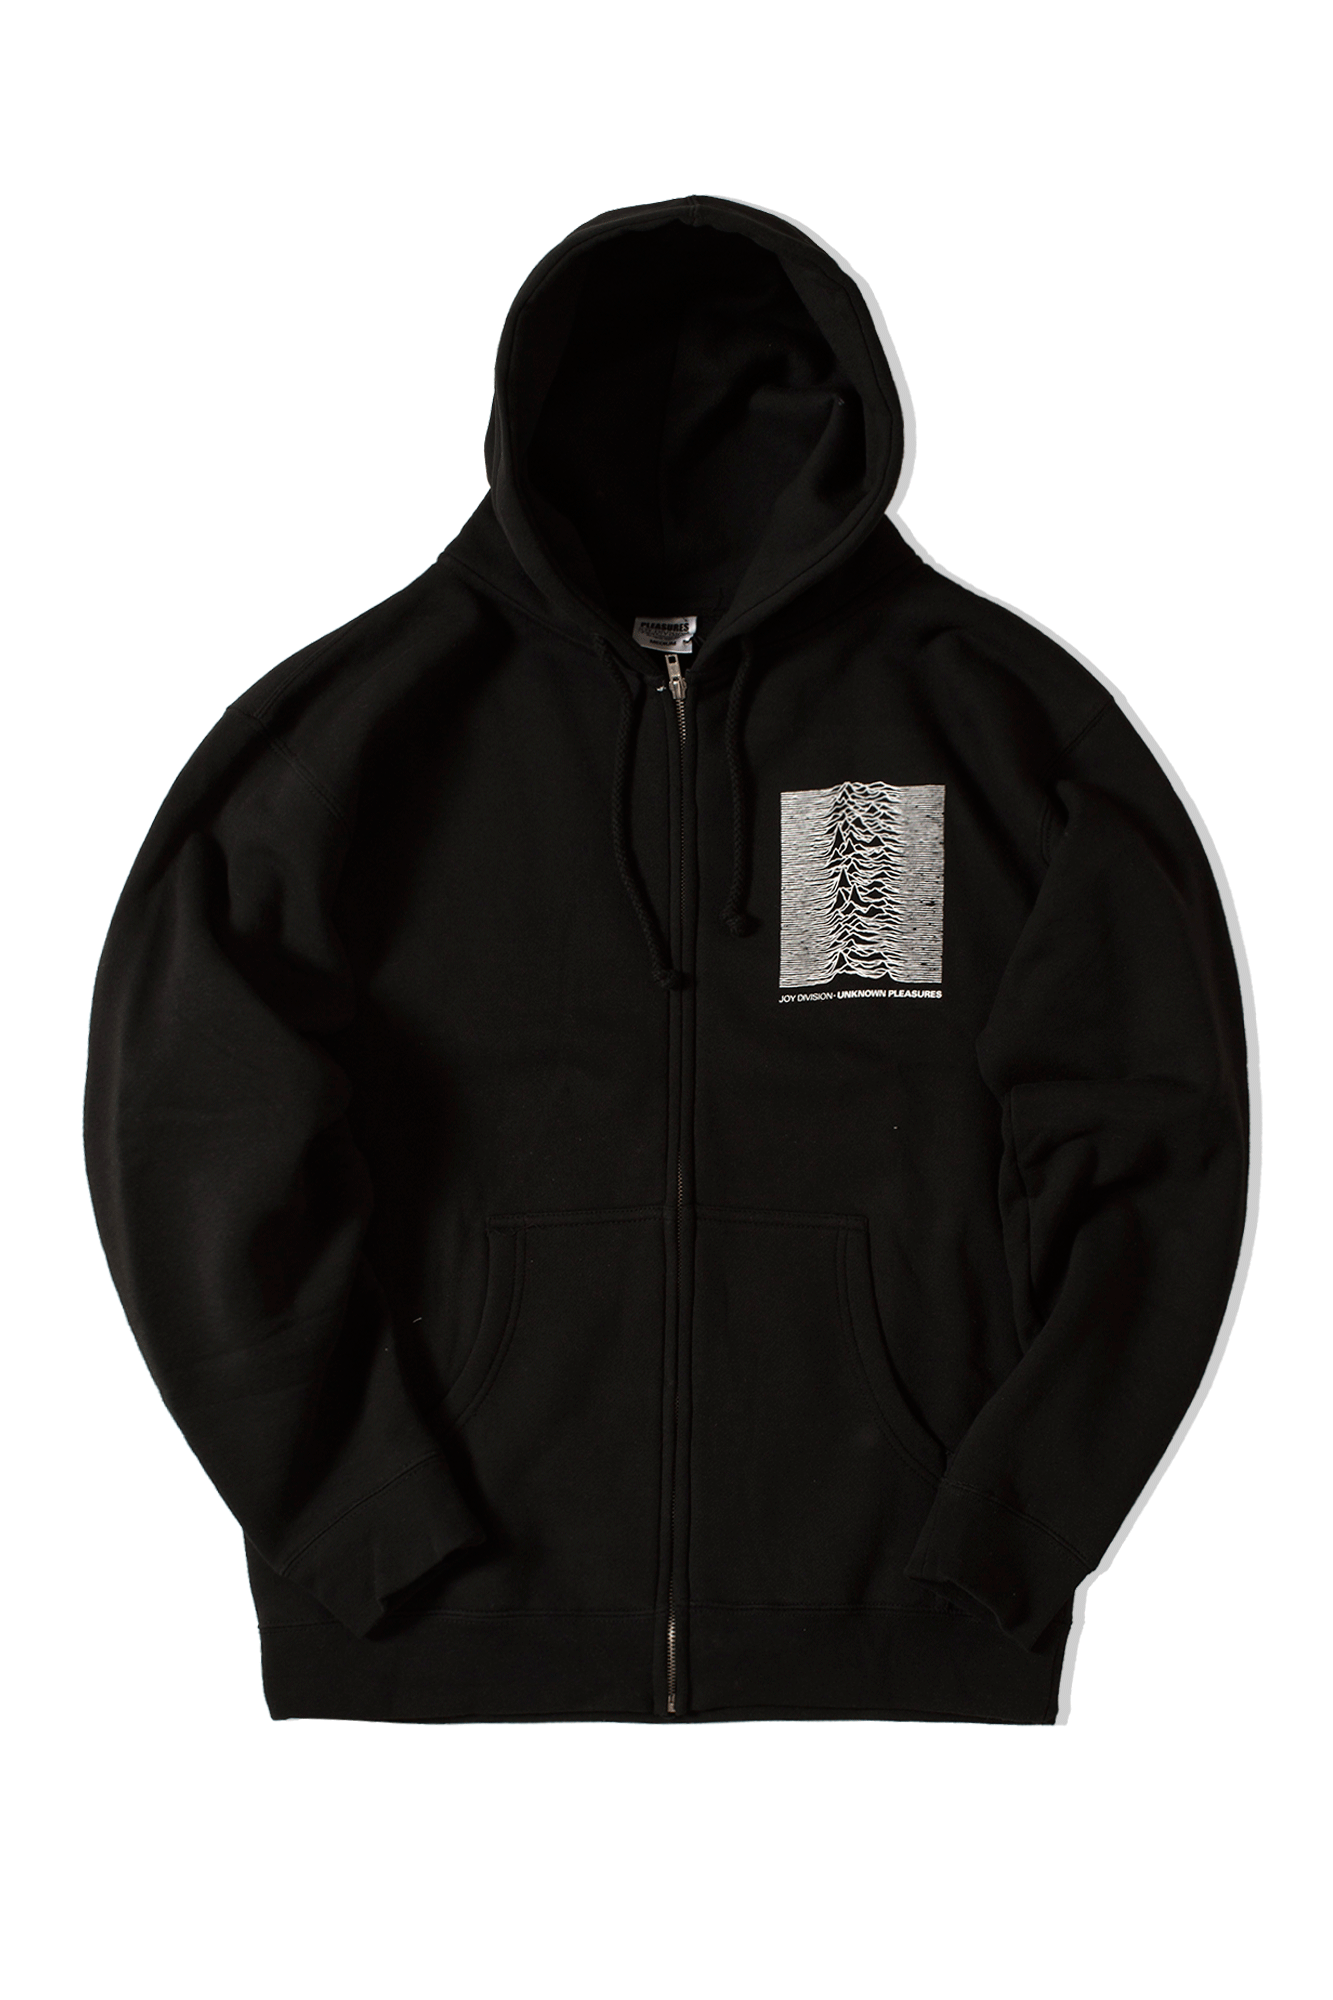 Up Zip Hoody x Joy Division Black